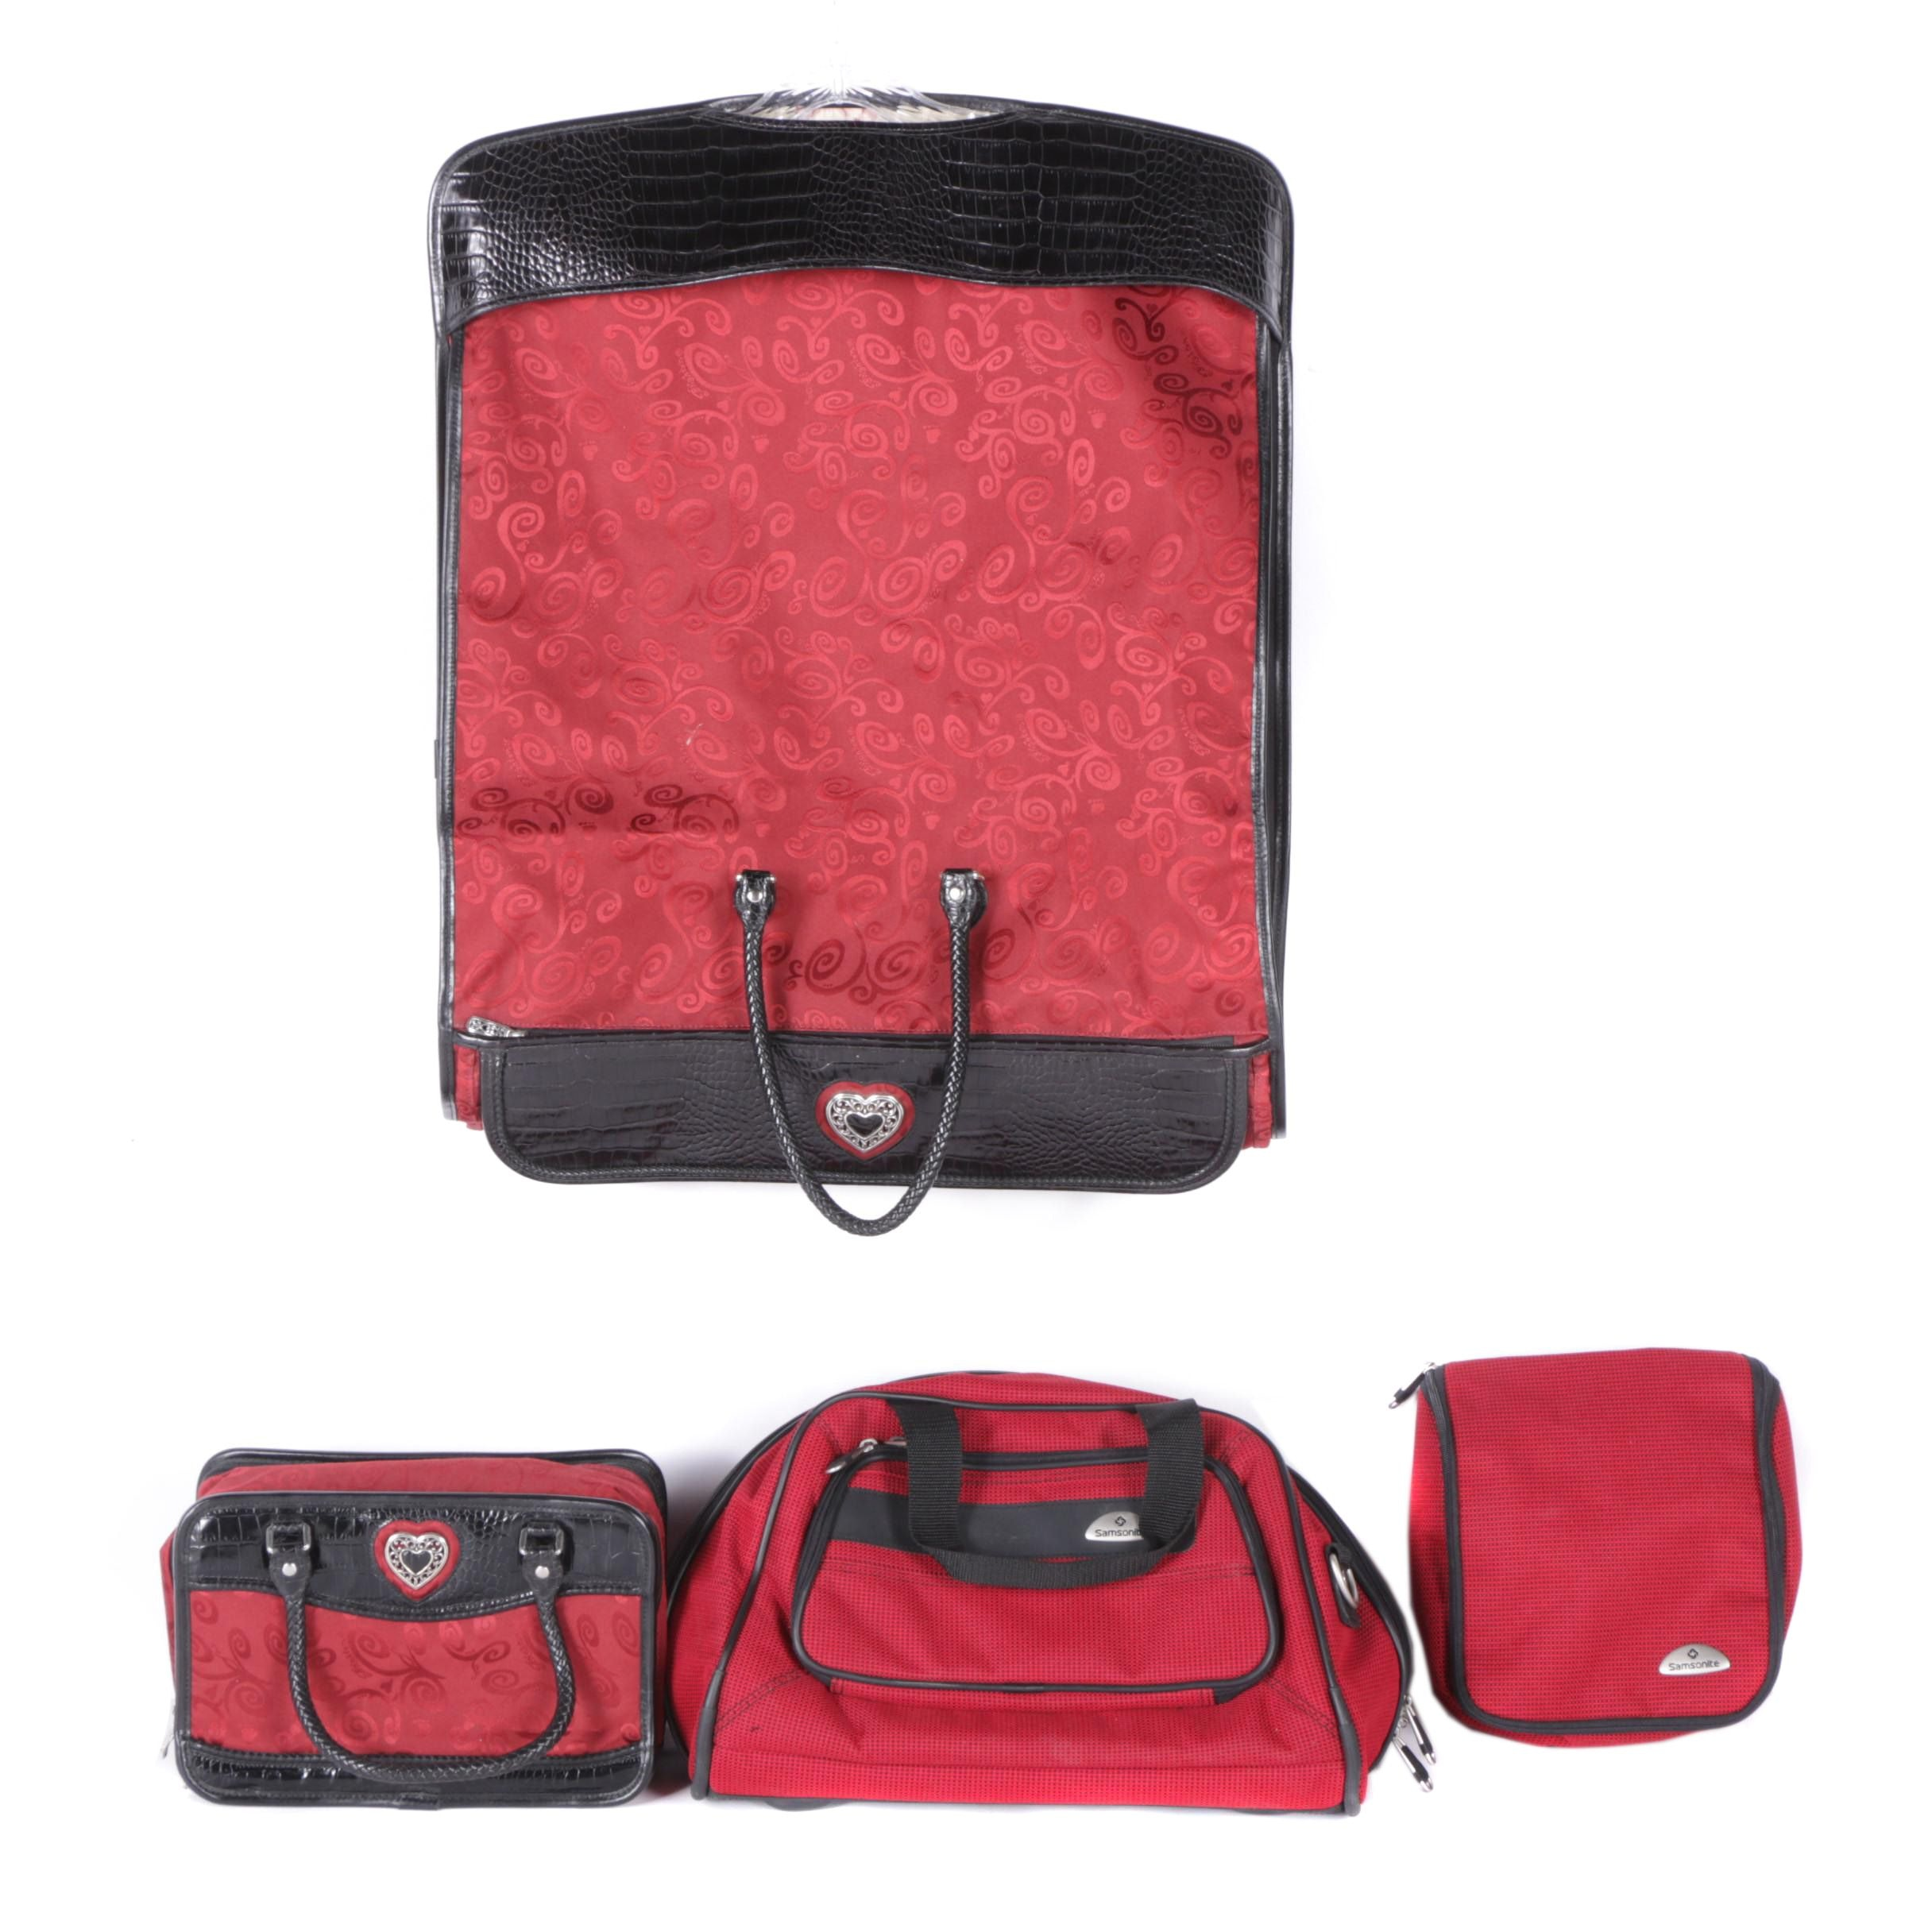 Red and Black Luggage by Samsonite and Brighton